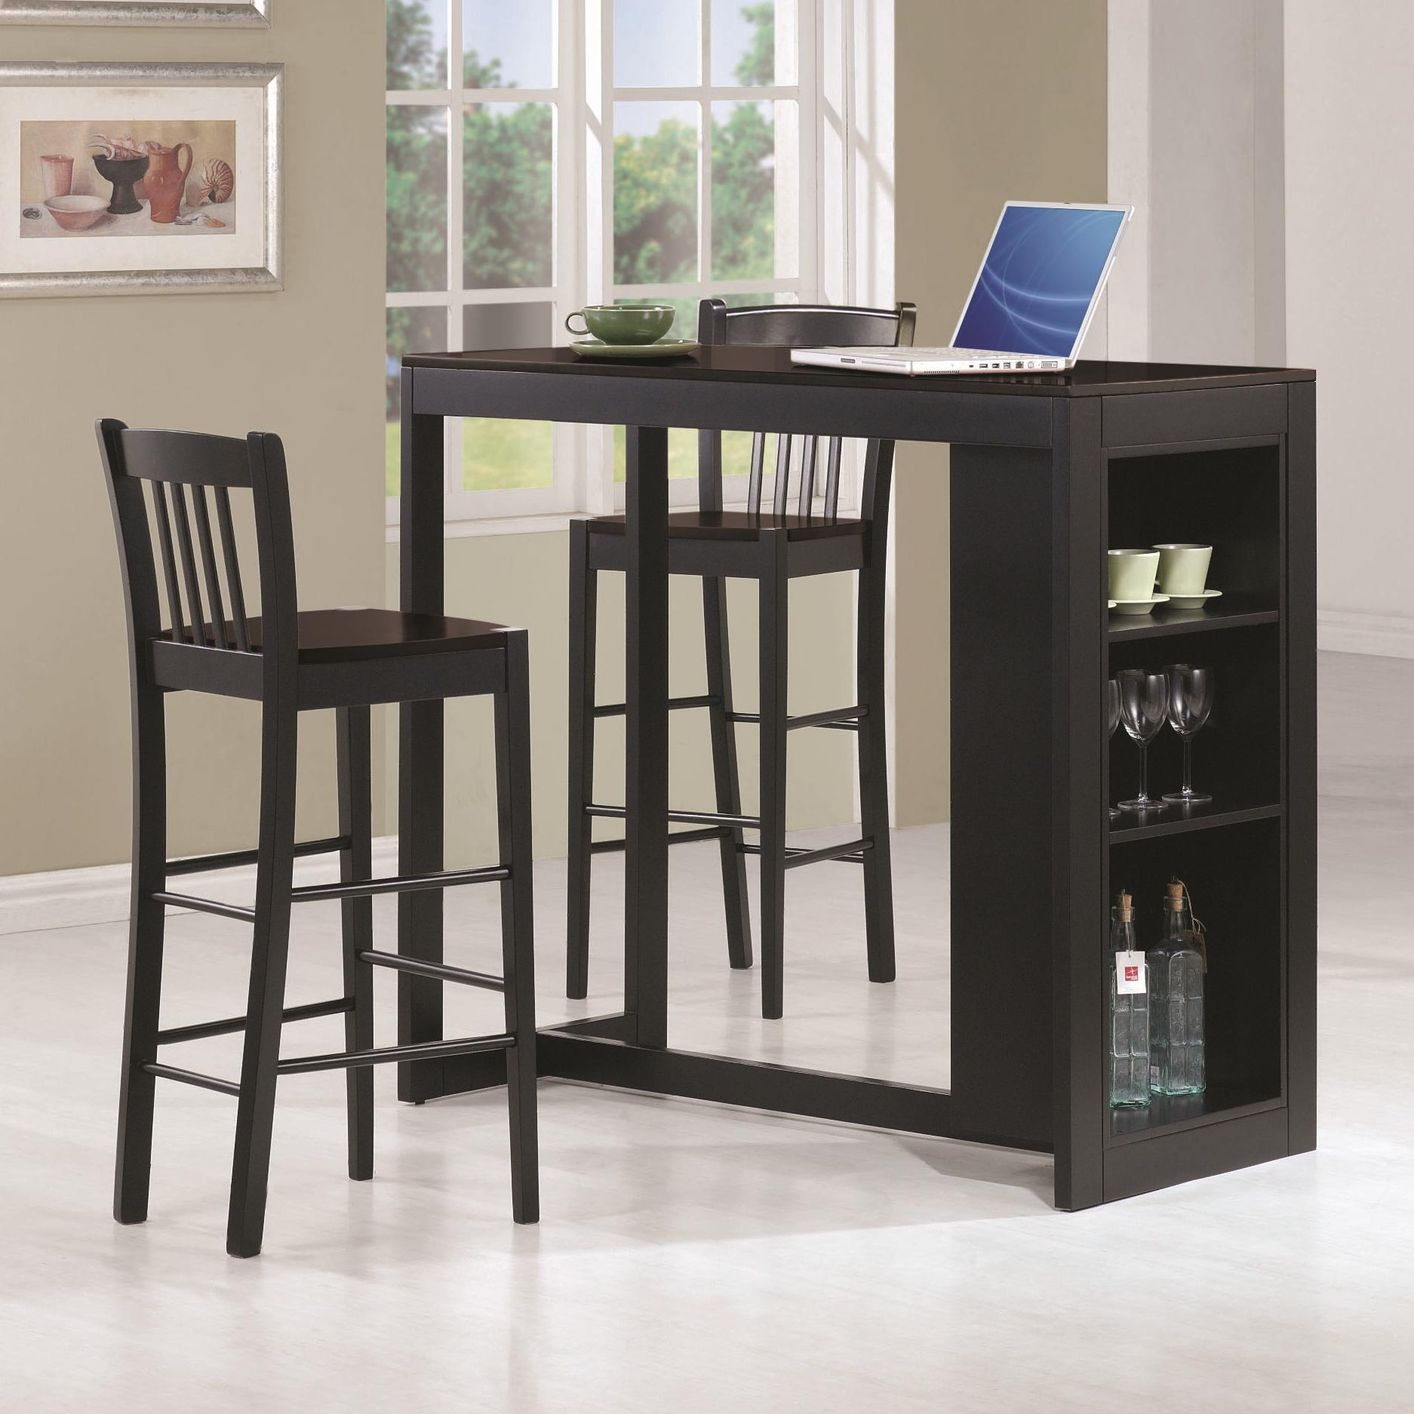 Gt dining gt bar amp counter height tables gt wood design high bar table - Kitchen Table With Storage Take Greater Advantage Of Your Small Counter Height Dining Table Inx Dining